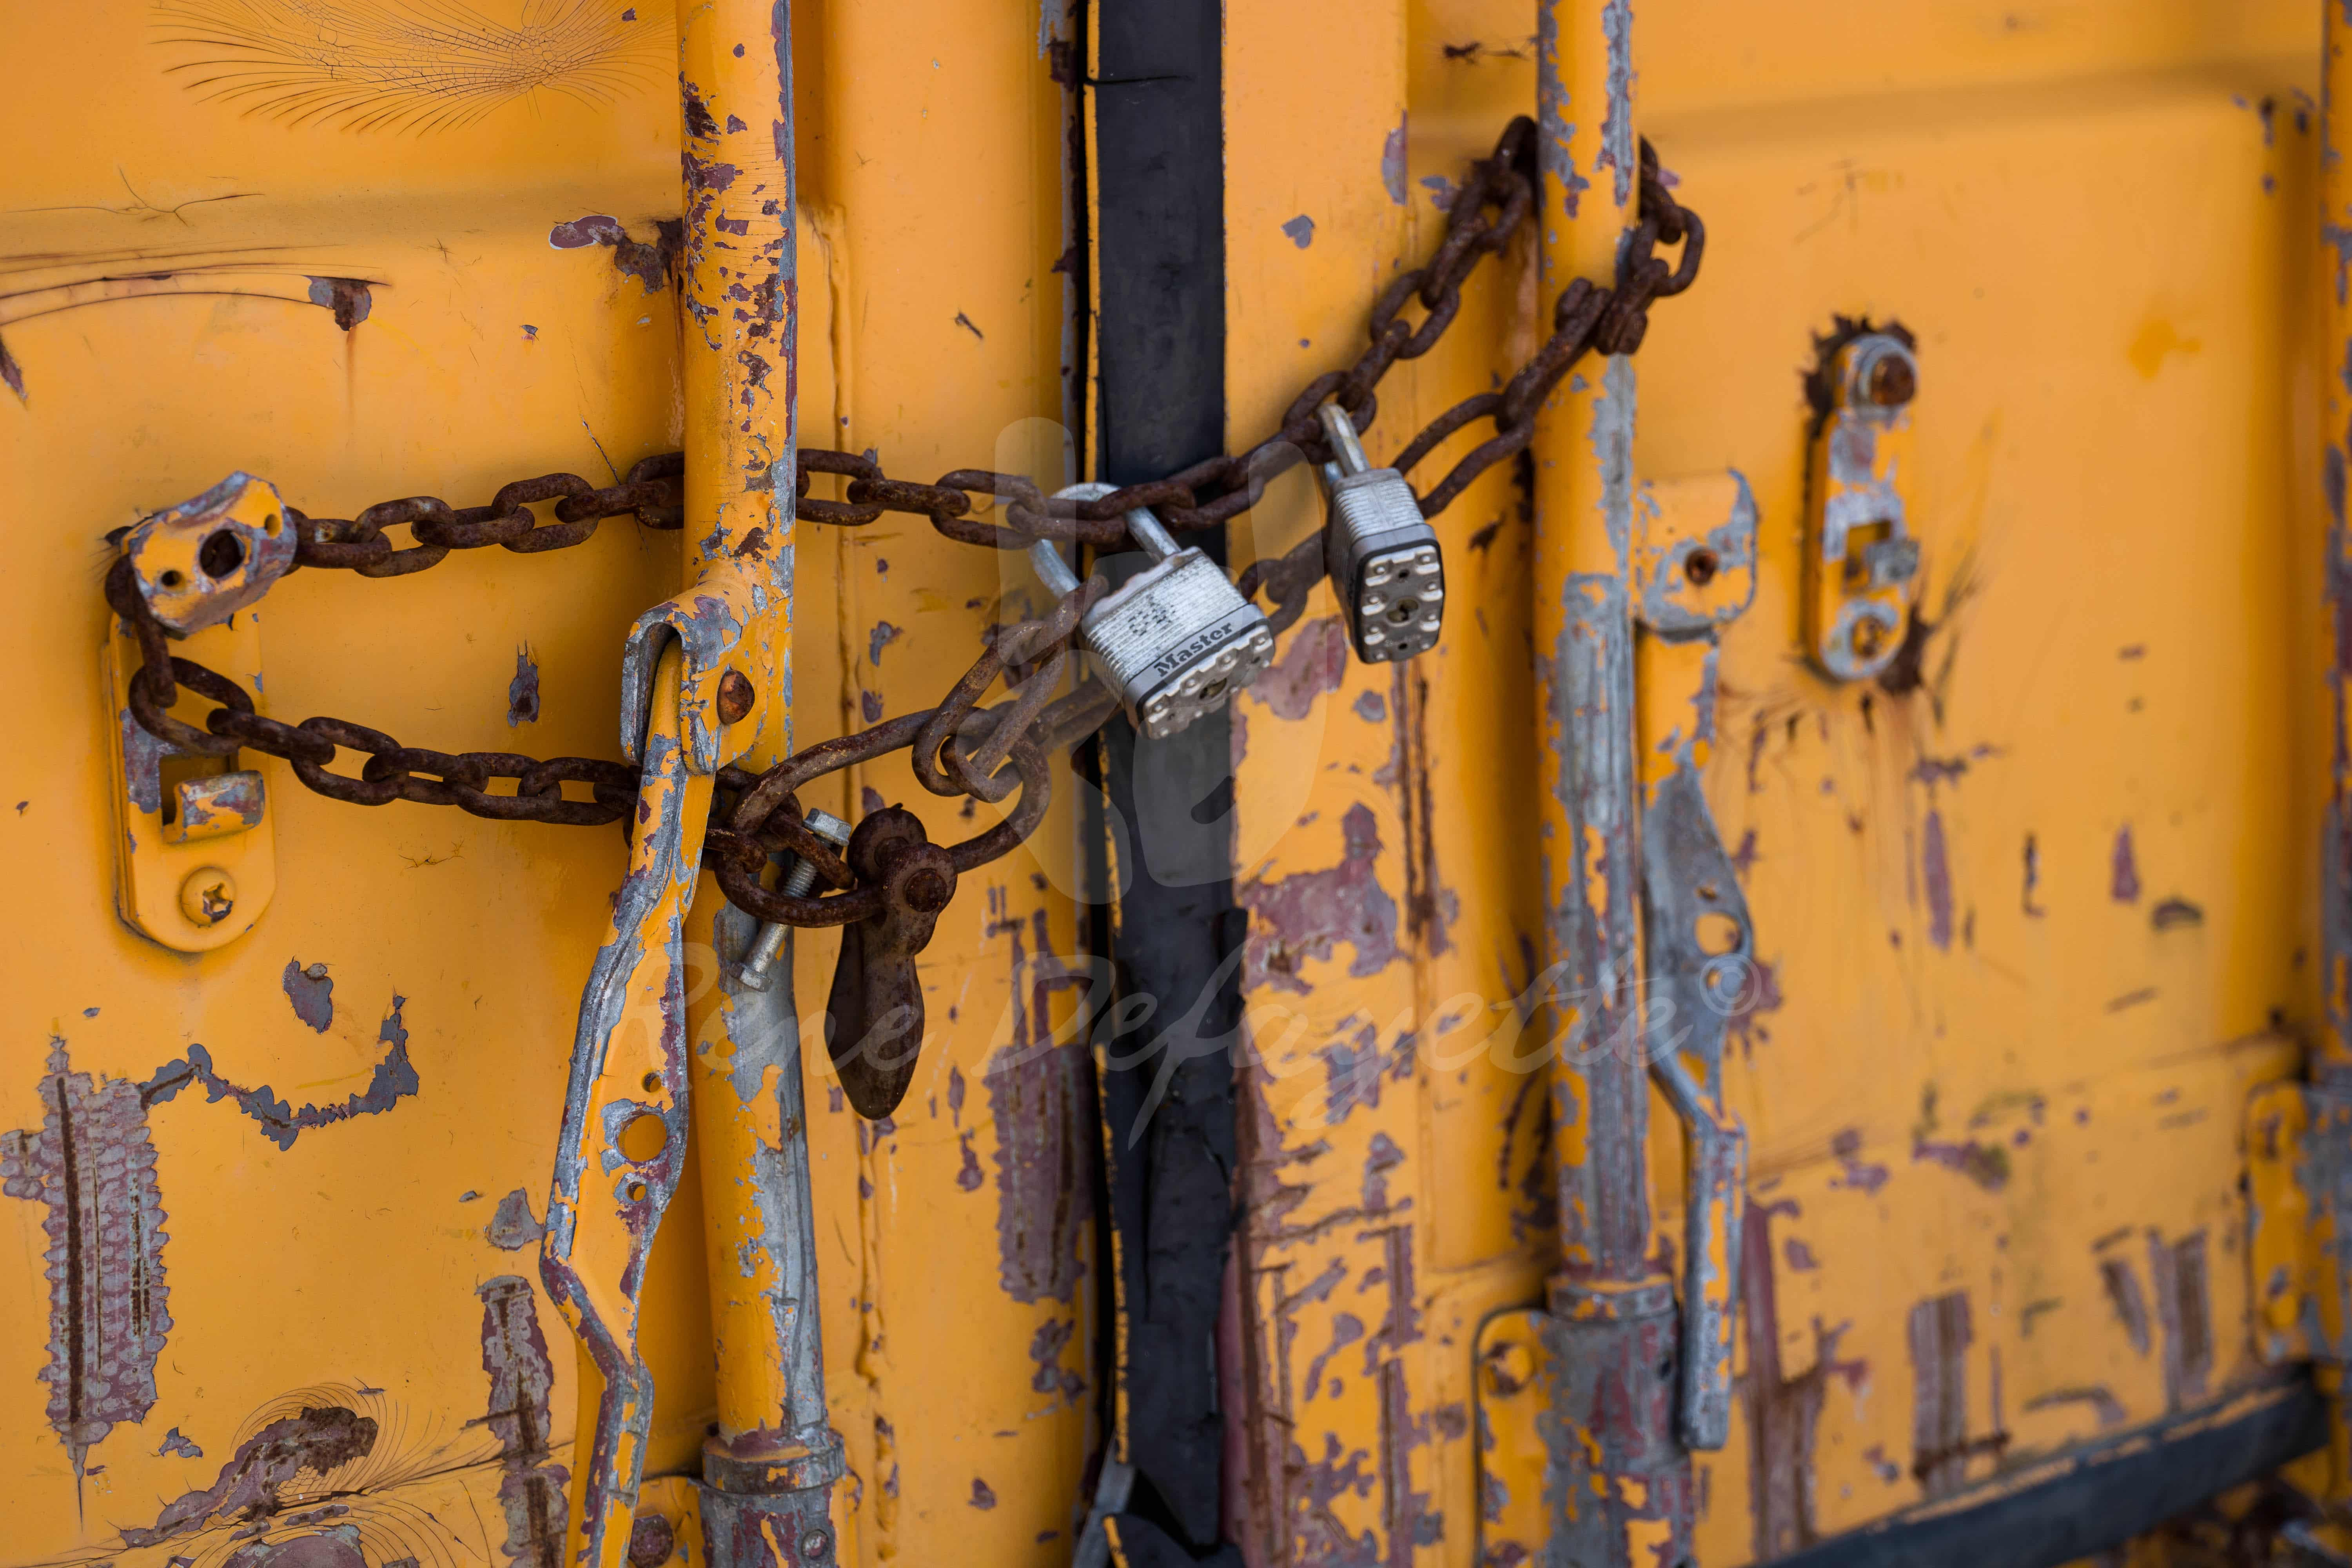 Photo London Ontario Shipping Container Yellow Streetphotography T1 1000308